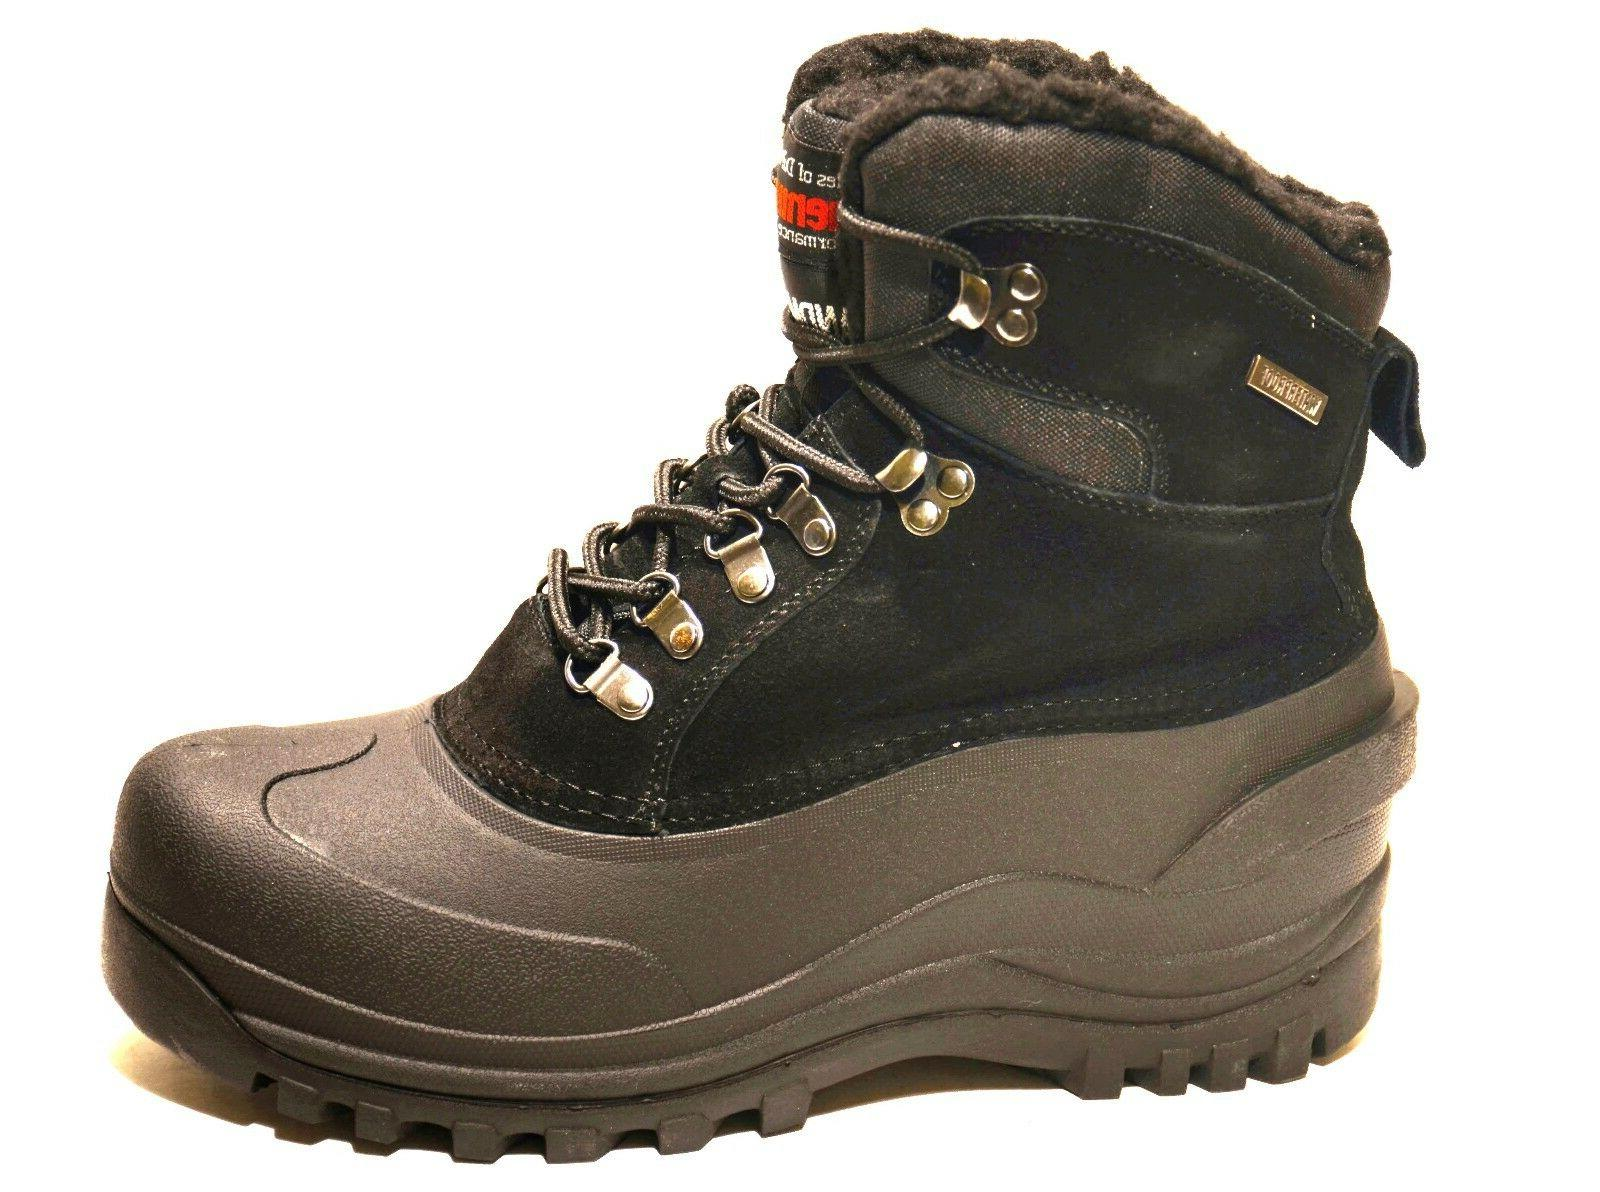 LM Winter Snow Boots Shoes Warm Lined